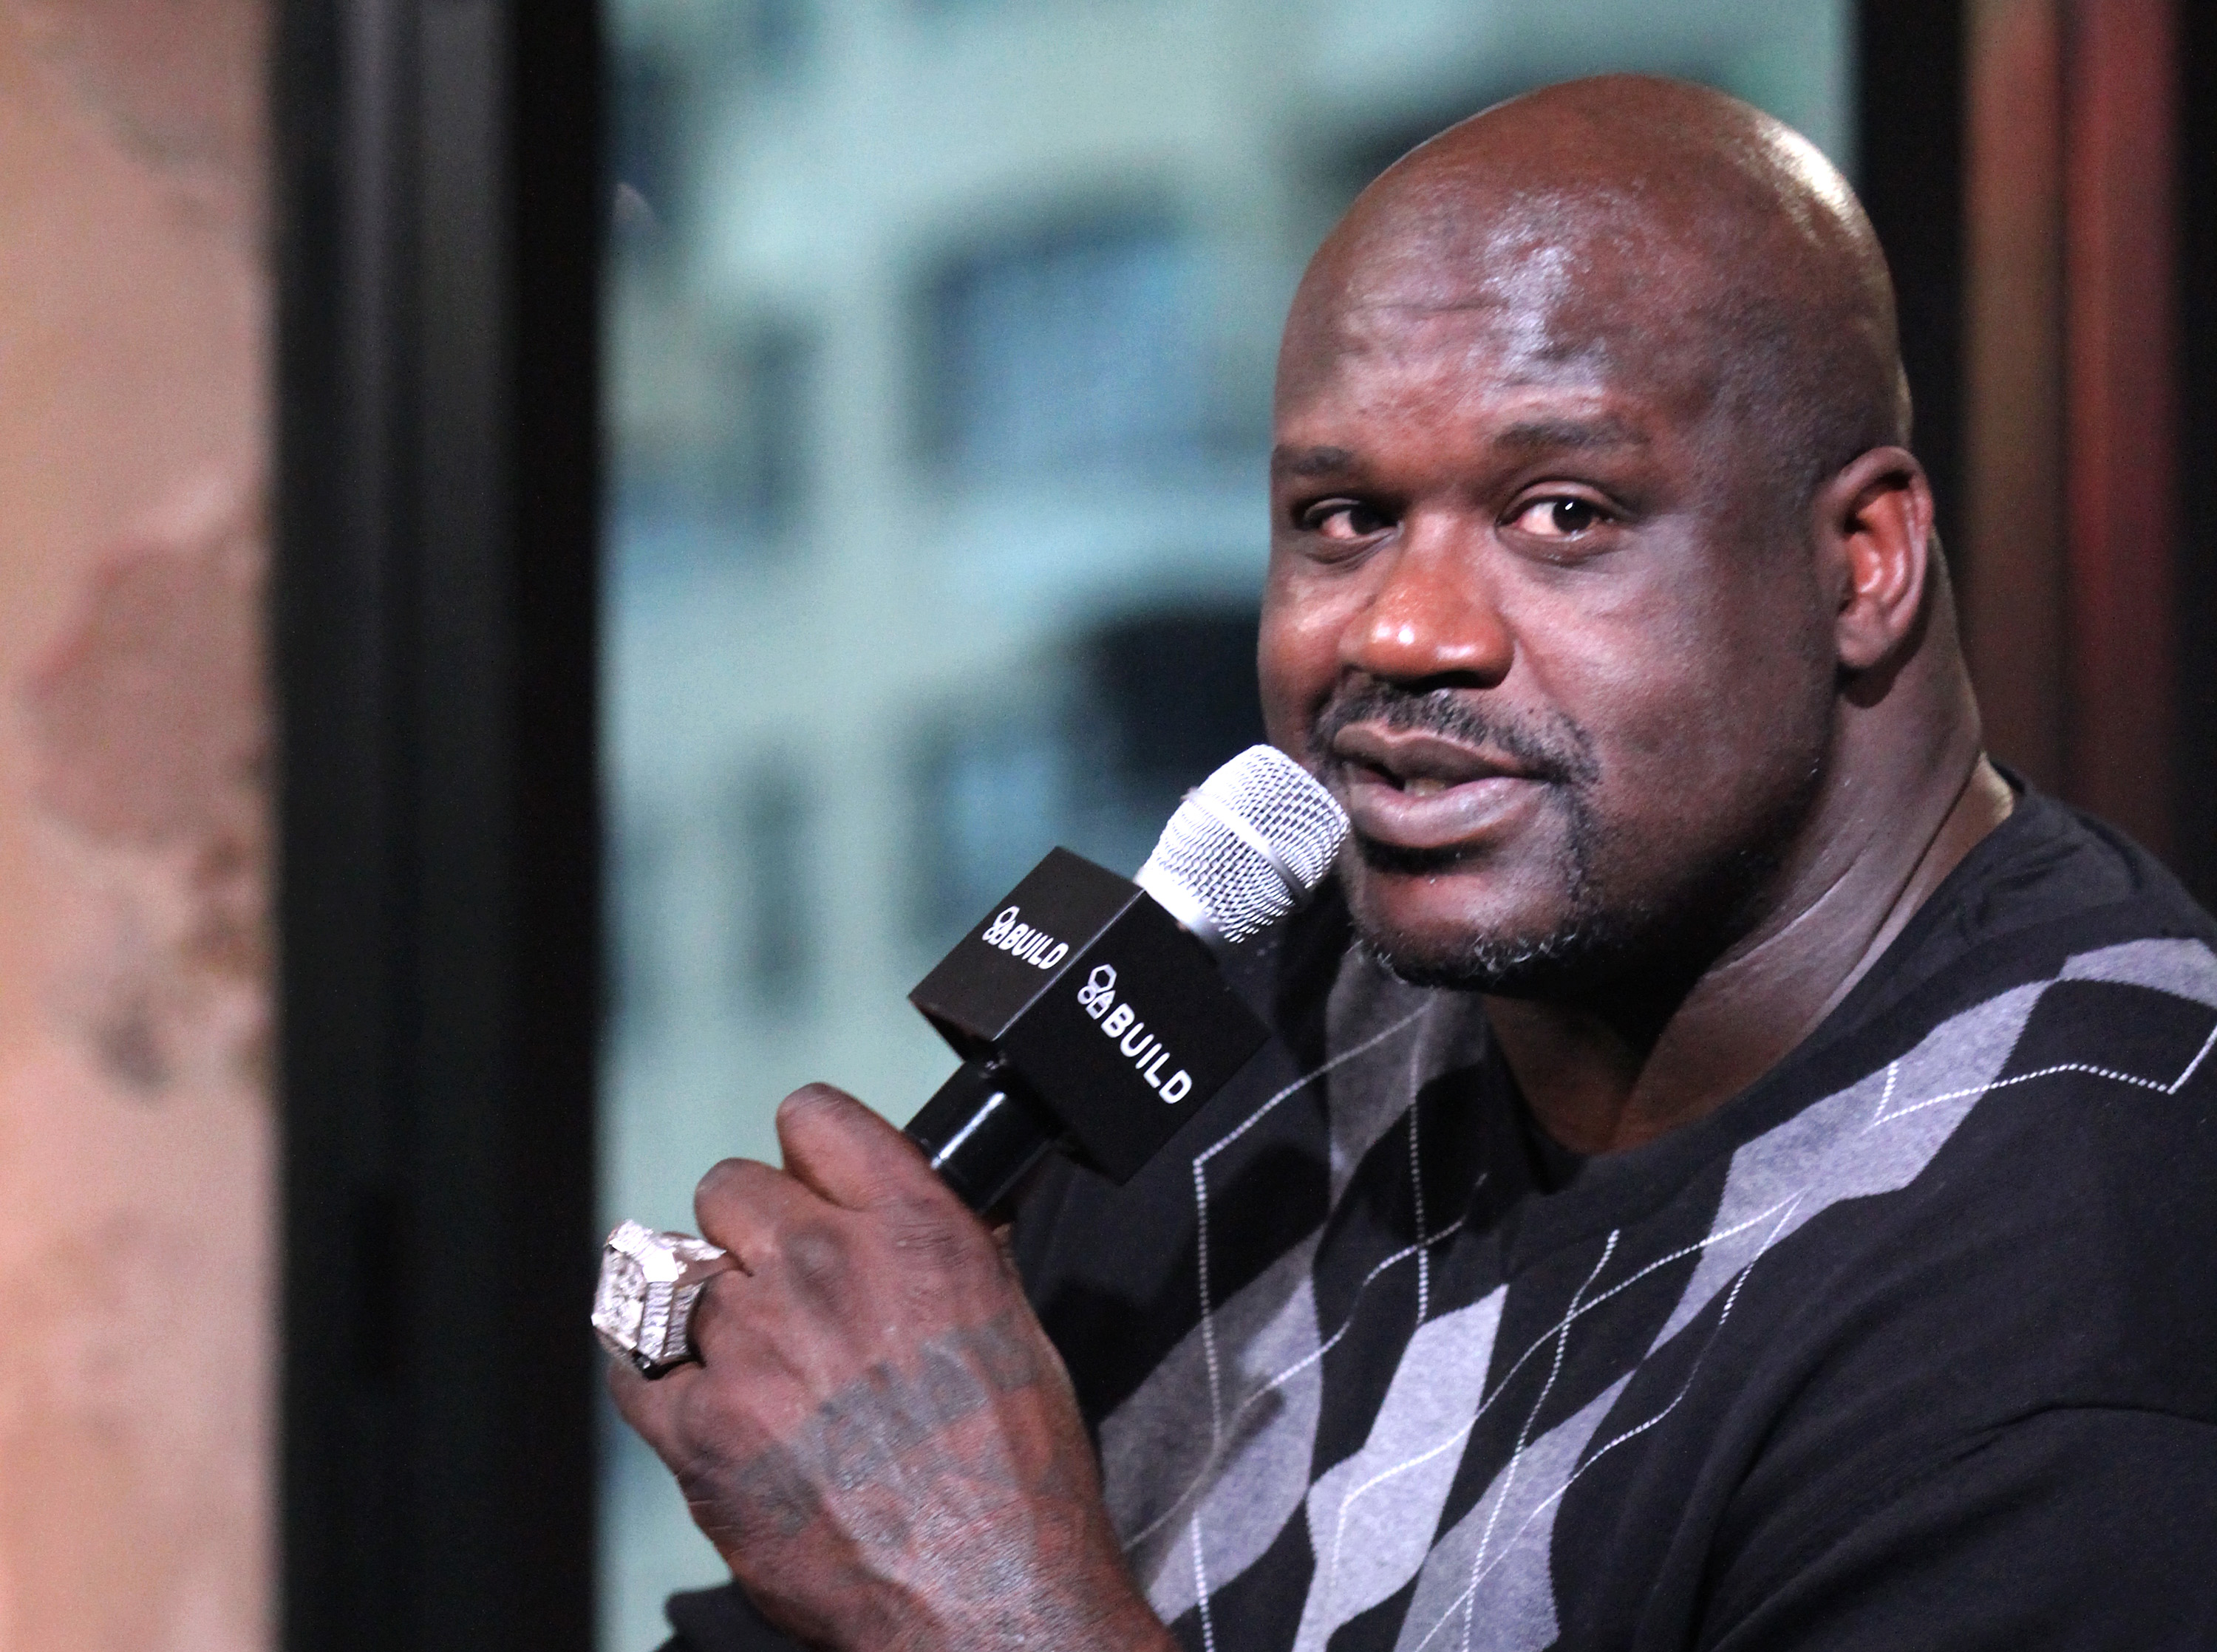 Build Presents Shaquille O'Neal Discussing Toys For Tots